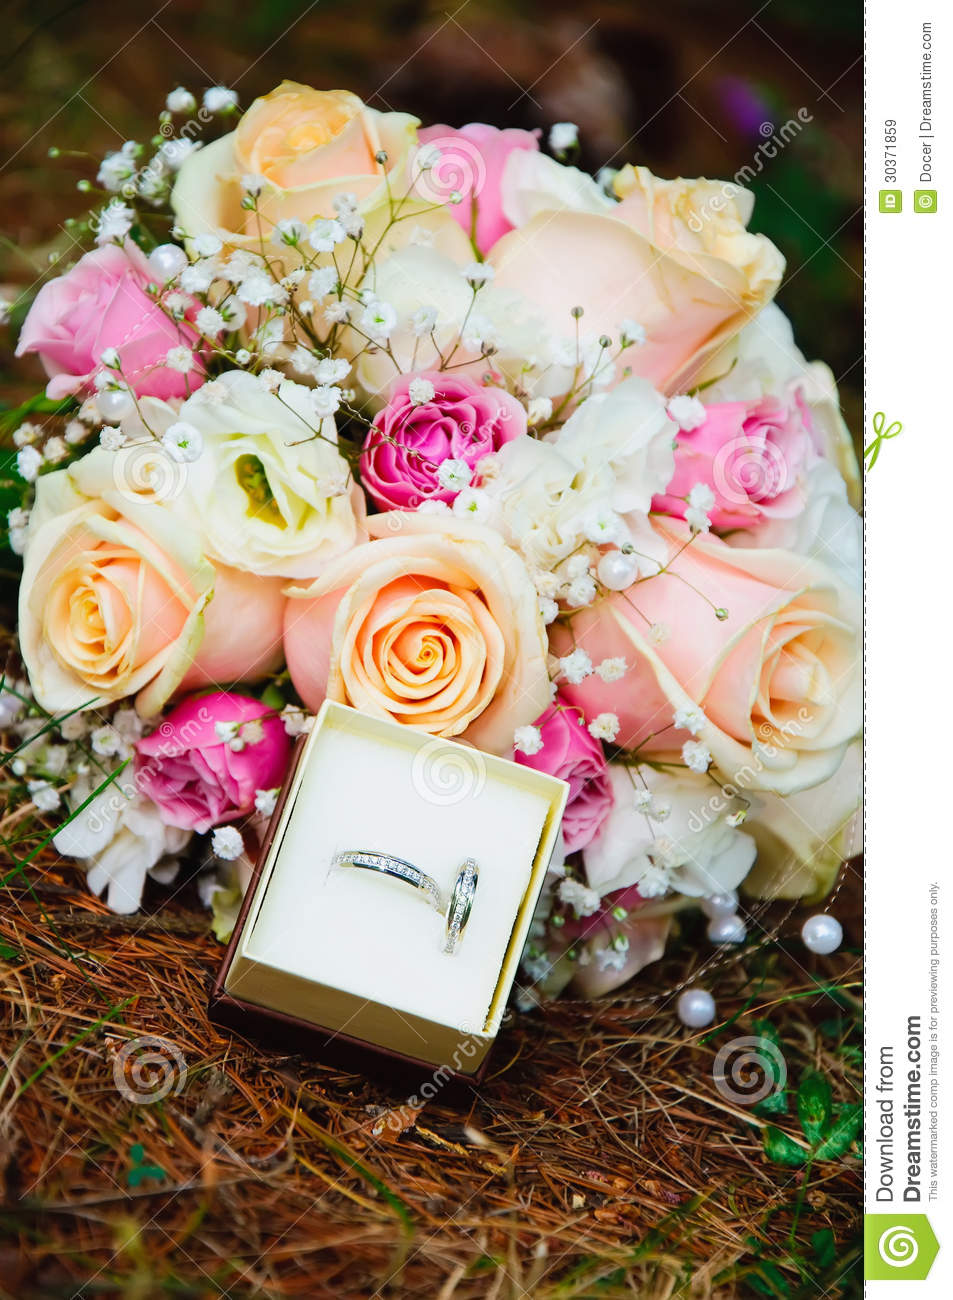 free engagement love on day trial for groom just bigstock hands wedding rings bride jewelry image bridal female stock couple of bouquet and photo male golden symbol married accessory eternal